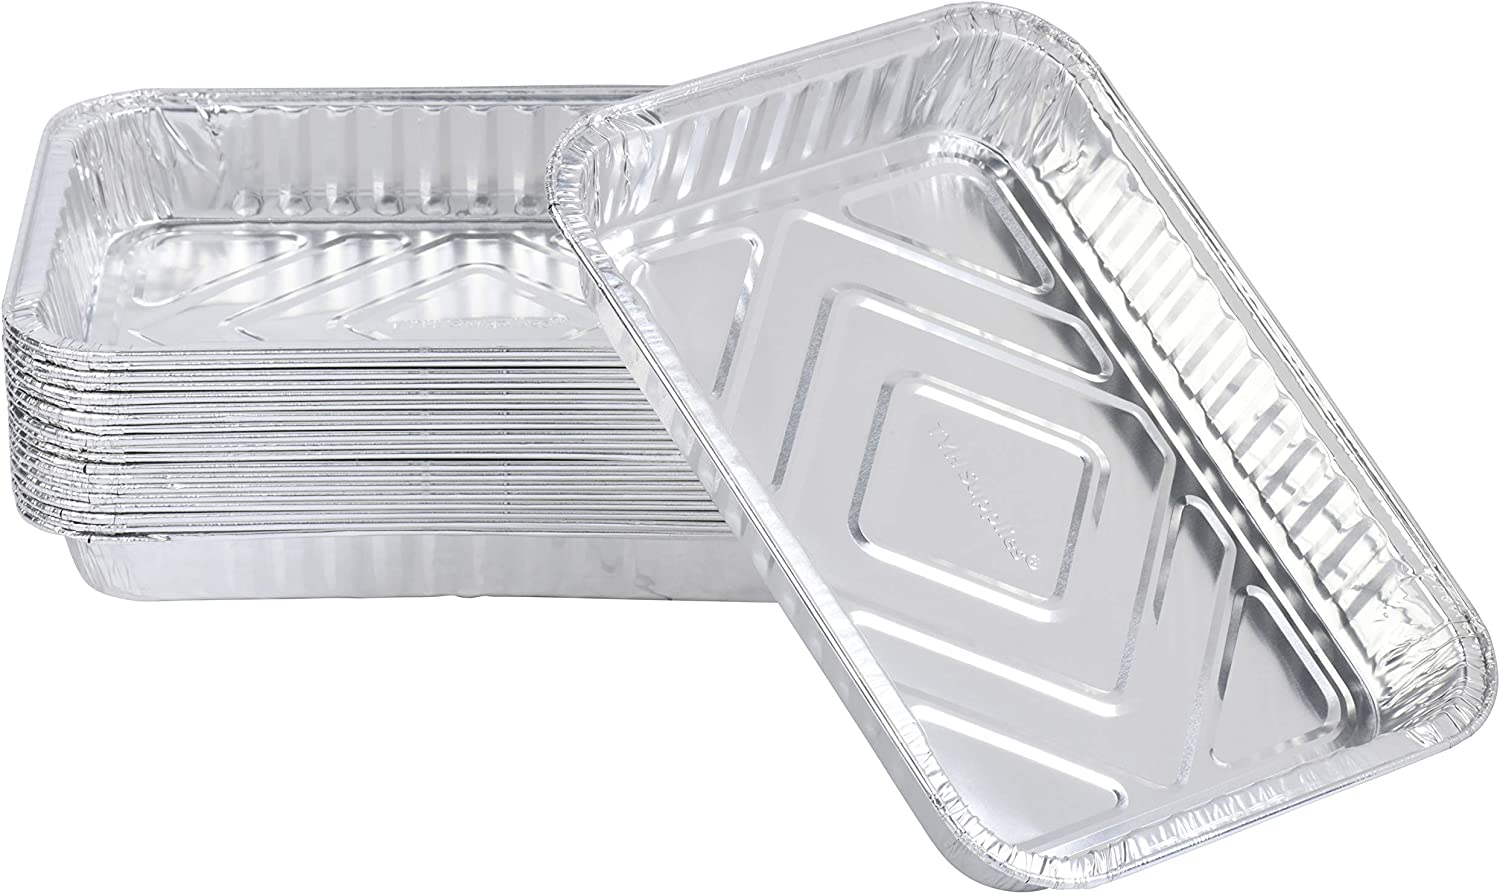 Discount is also underway TYH Supplies 20-Pack Aluminum Foil Compatib Drip Grease Great interest Pans BBQ